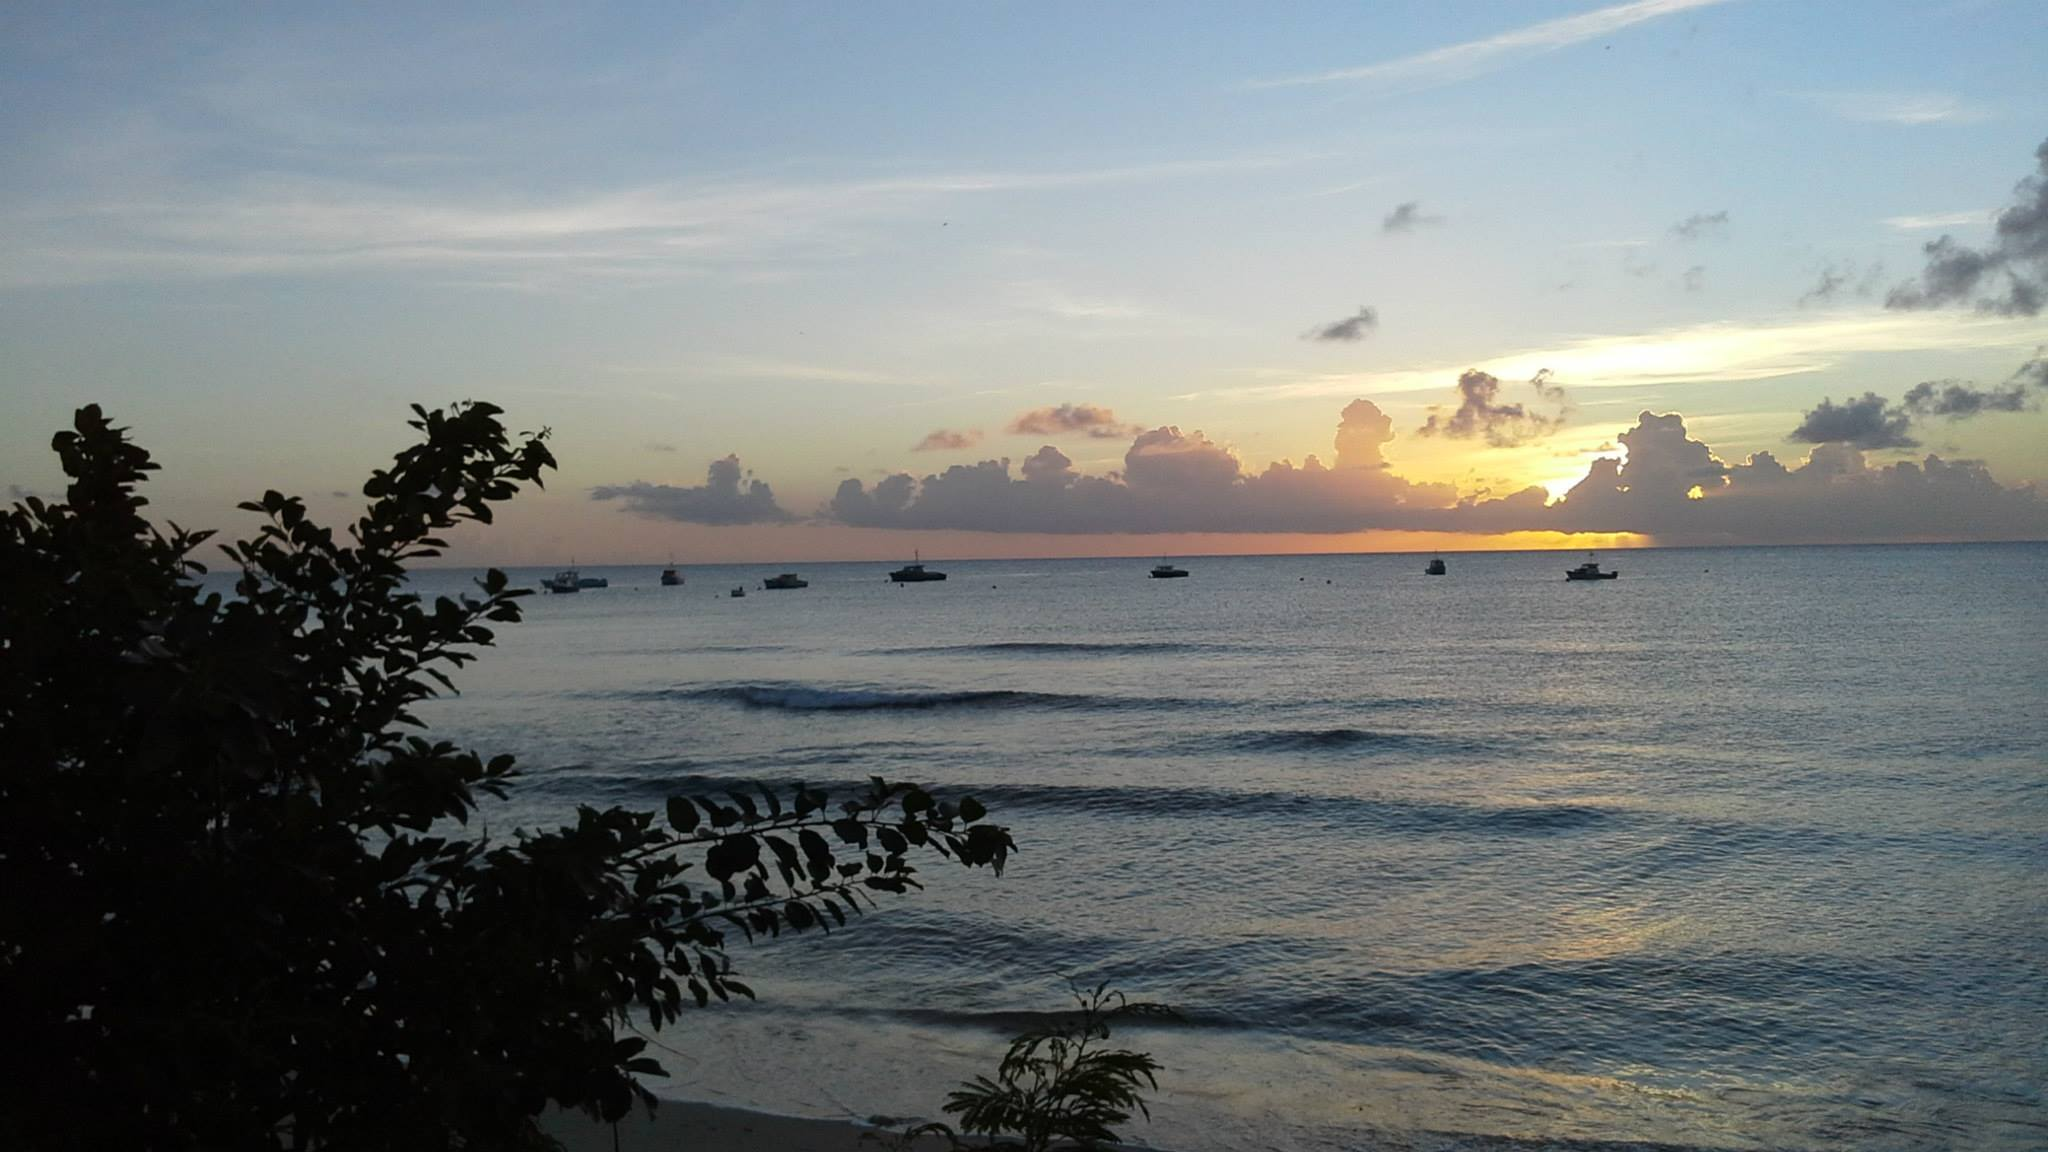 Miri-Joy Apartments Barbados beautiful sunset views over the Caribbean Sea.